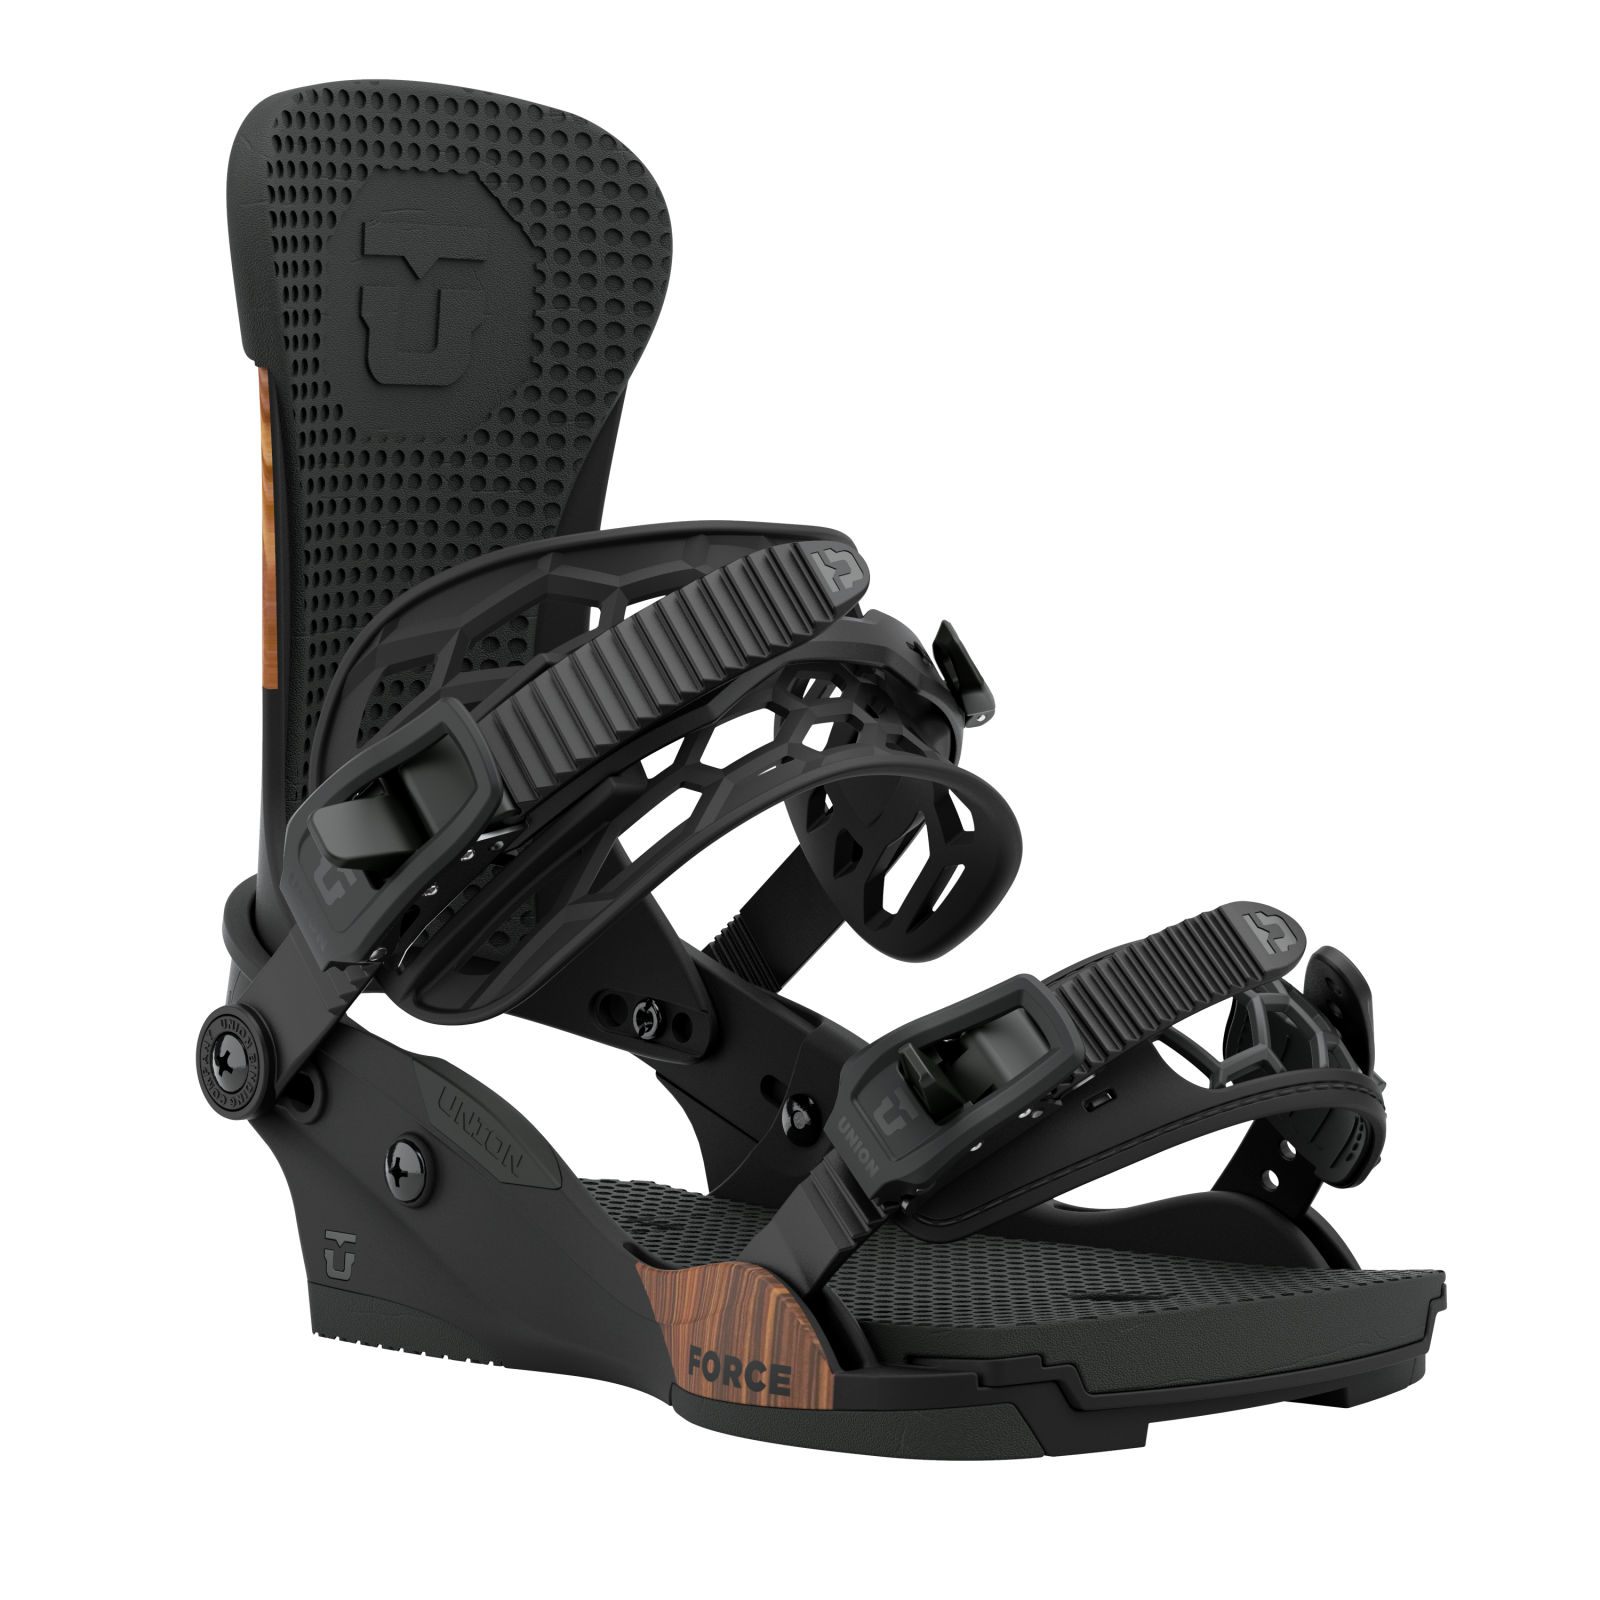 Union Force Snowboard Binding (Multiple Color Options)